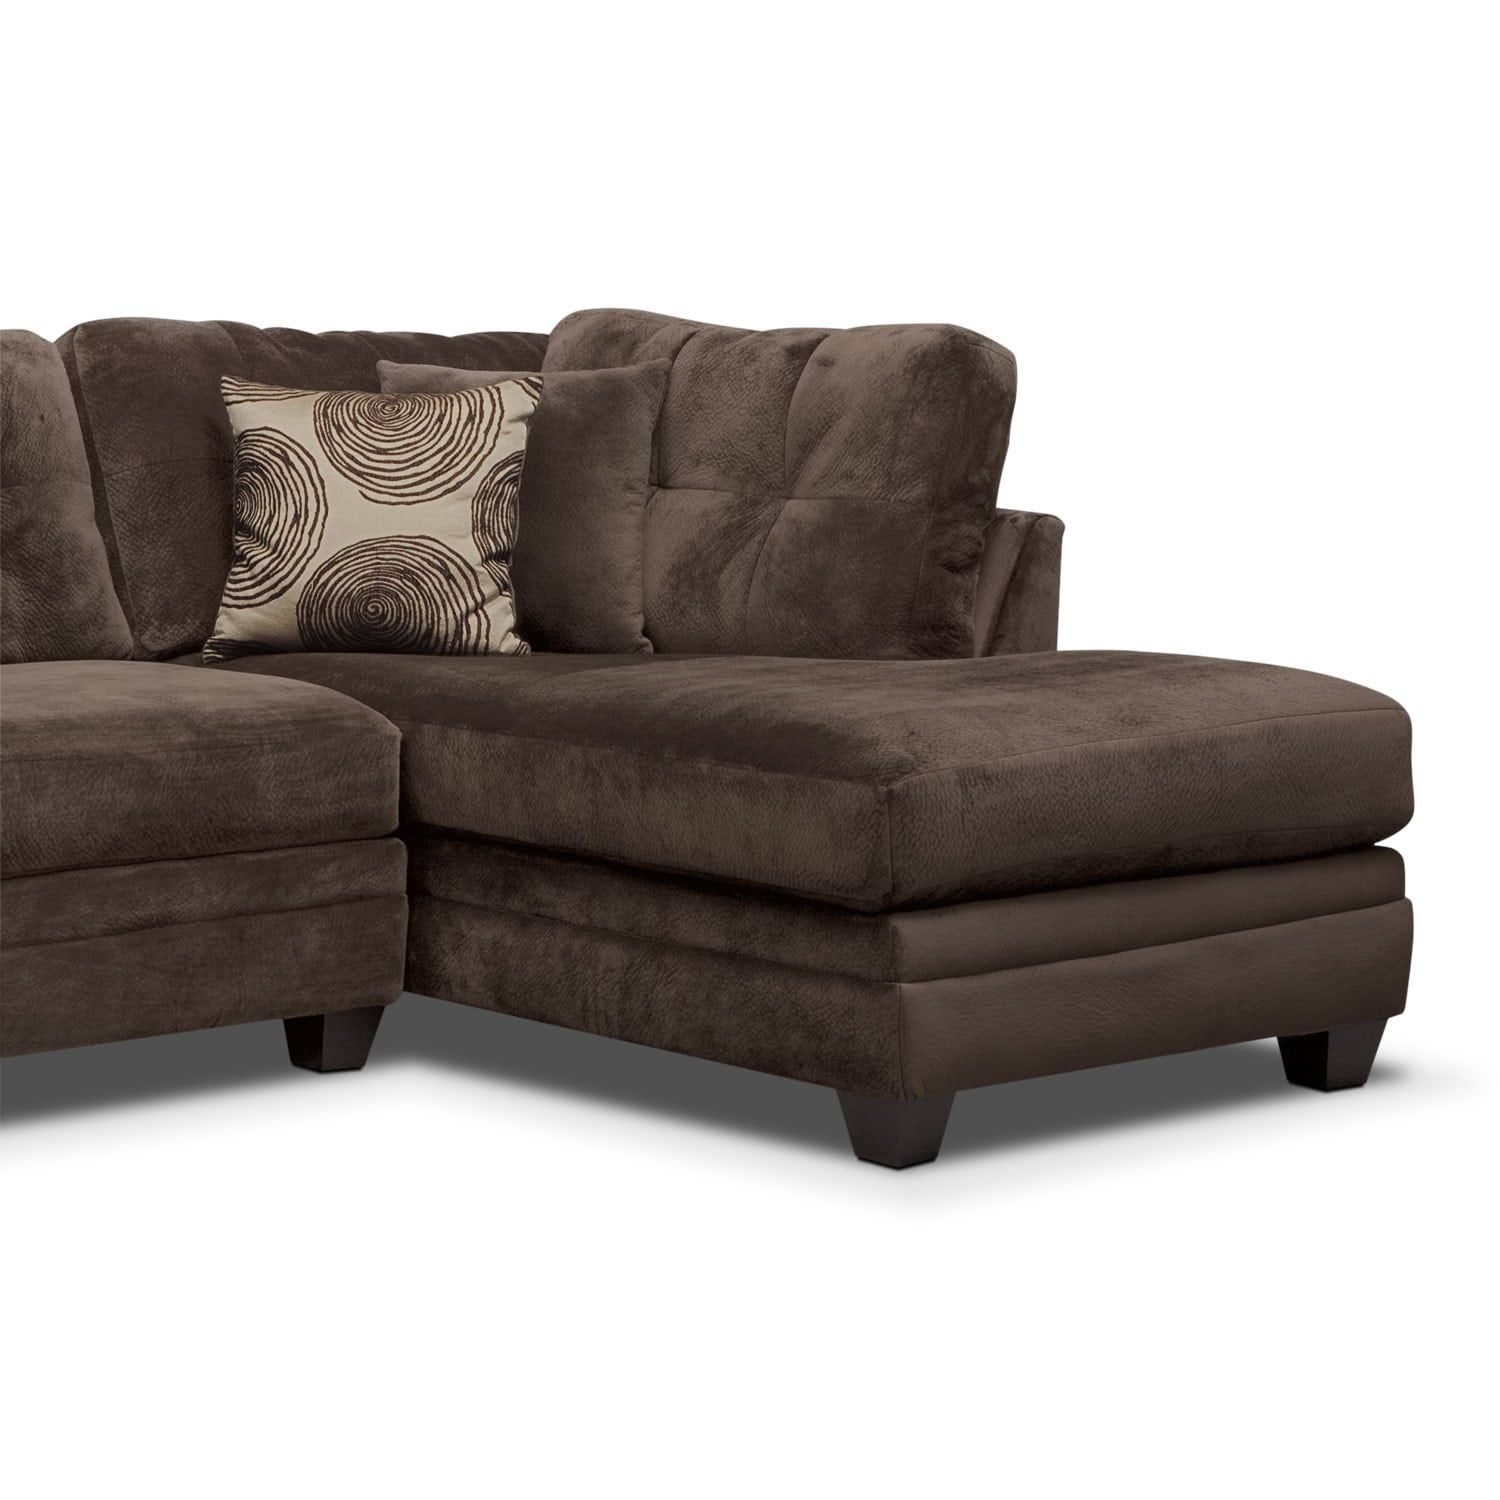 cordelle 2piece rightfacing chaise sectional chocolate by factory outlet